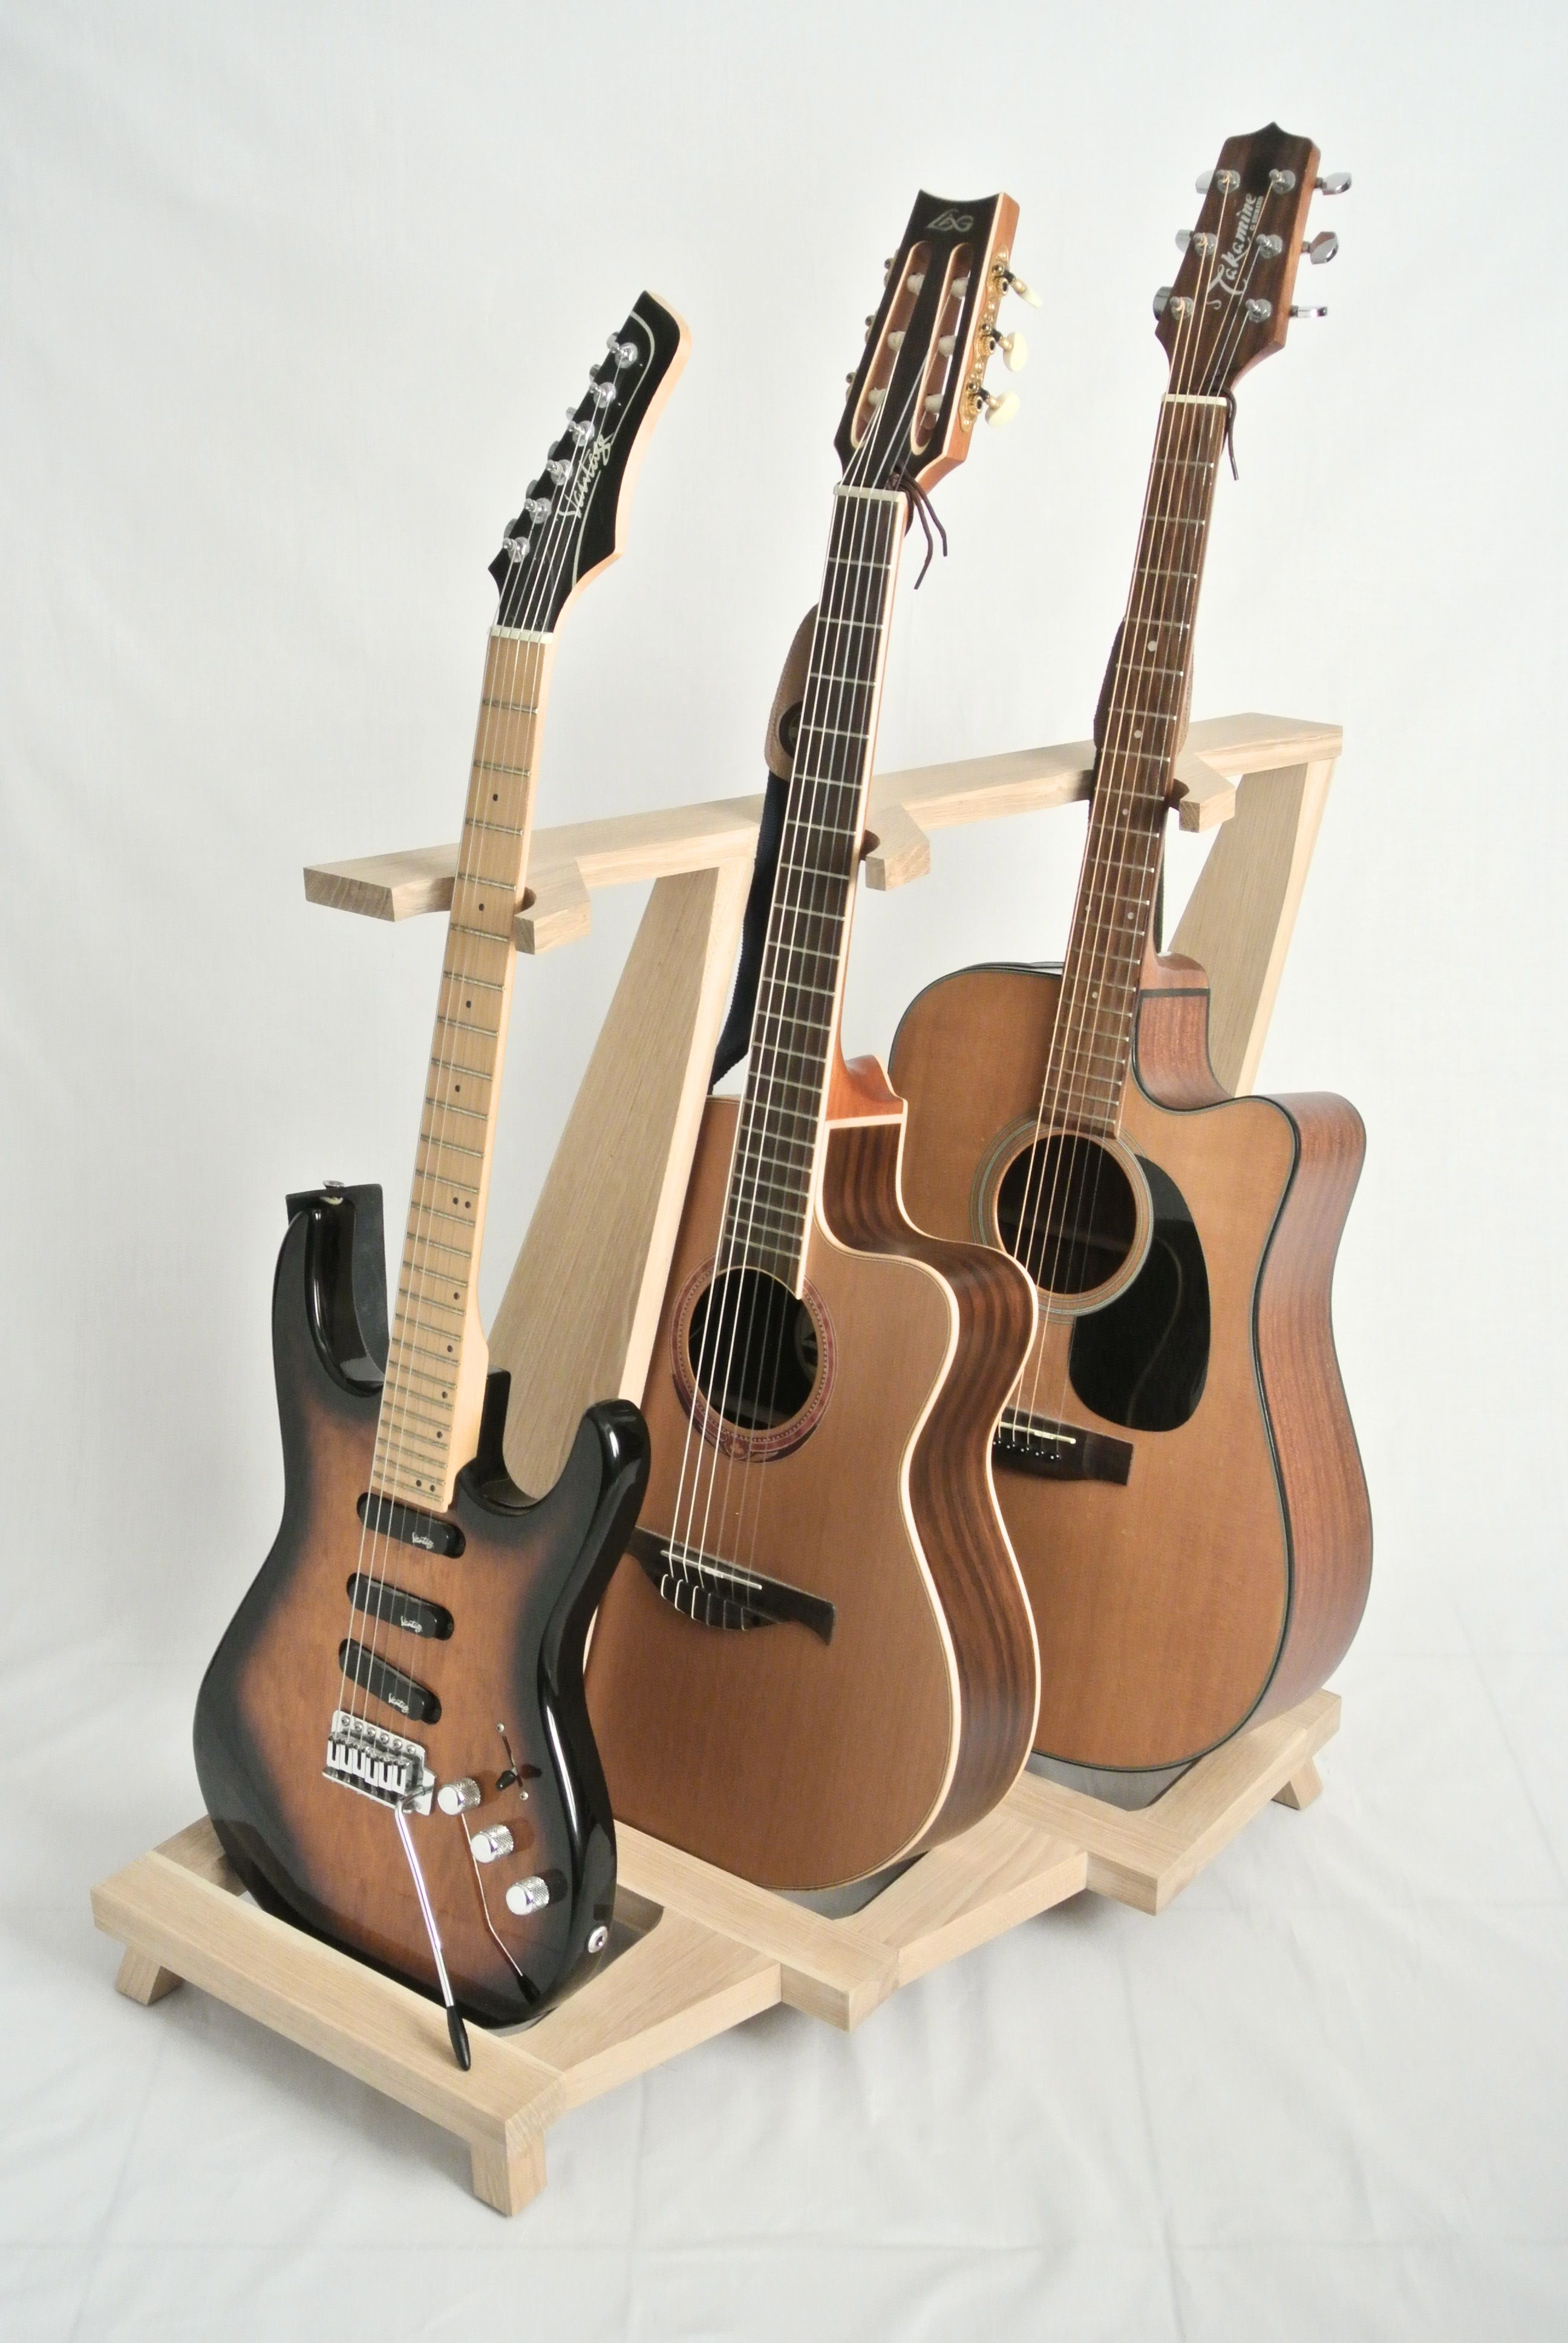 guitar stand made of wood with three guitars guitar stands holders pied de guitare. Black Bedroom Furniture Sets. Home Design Ideas